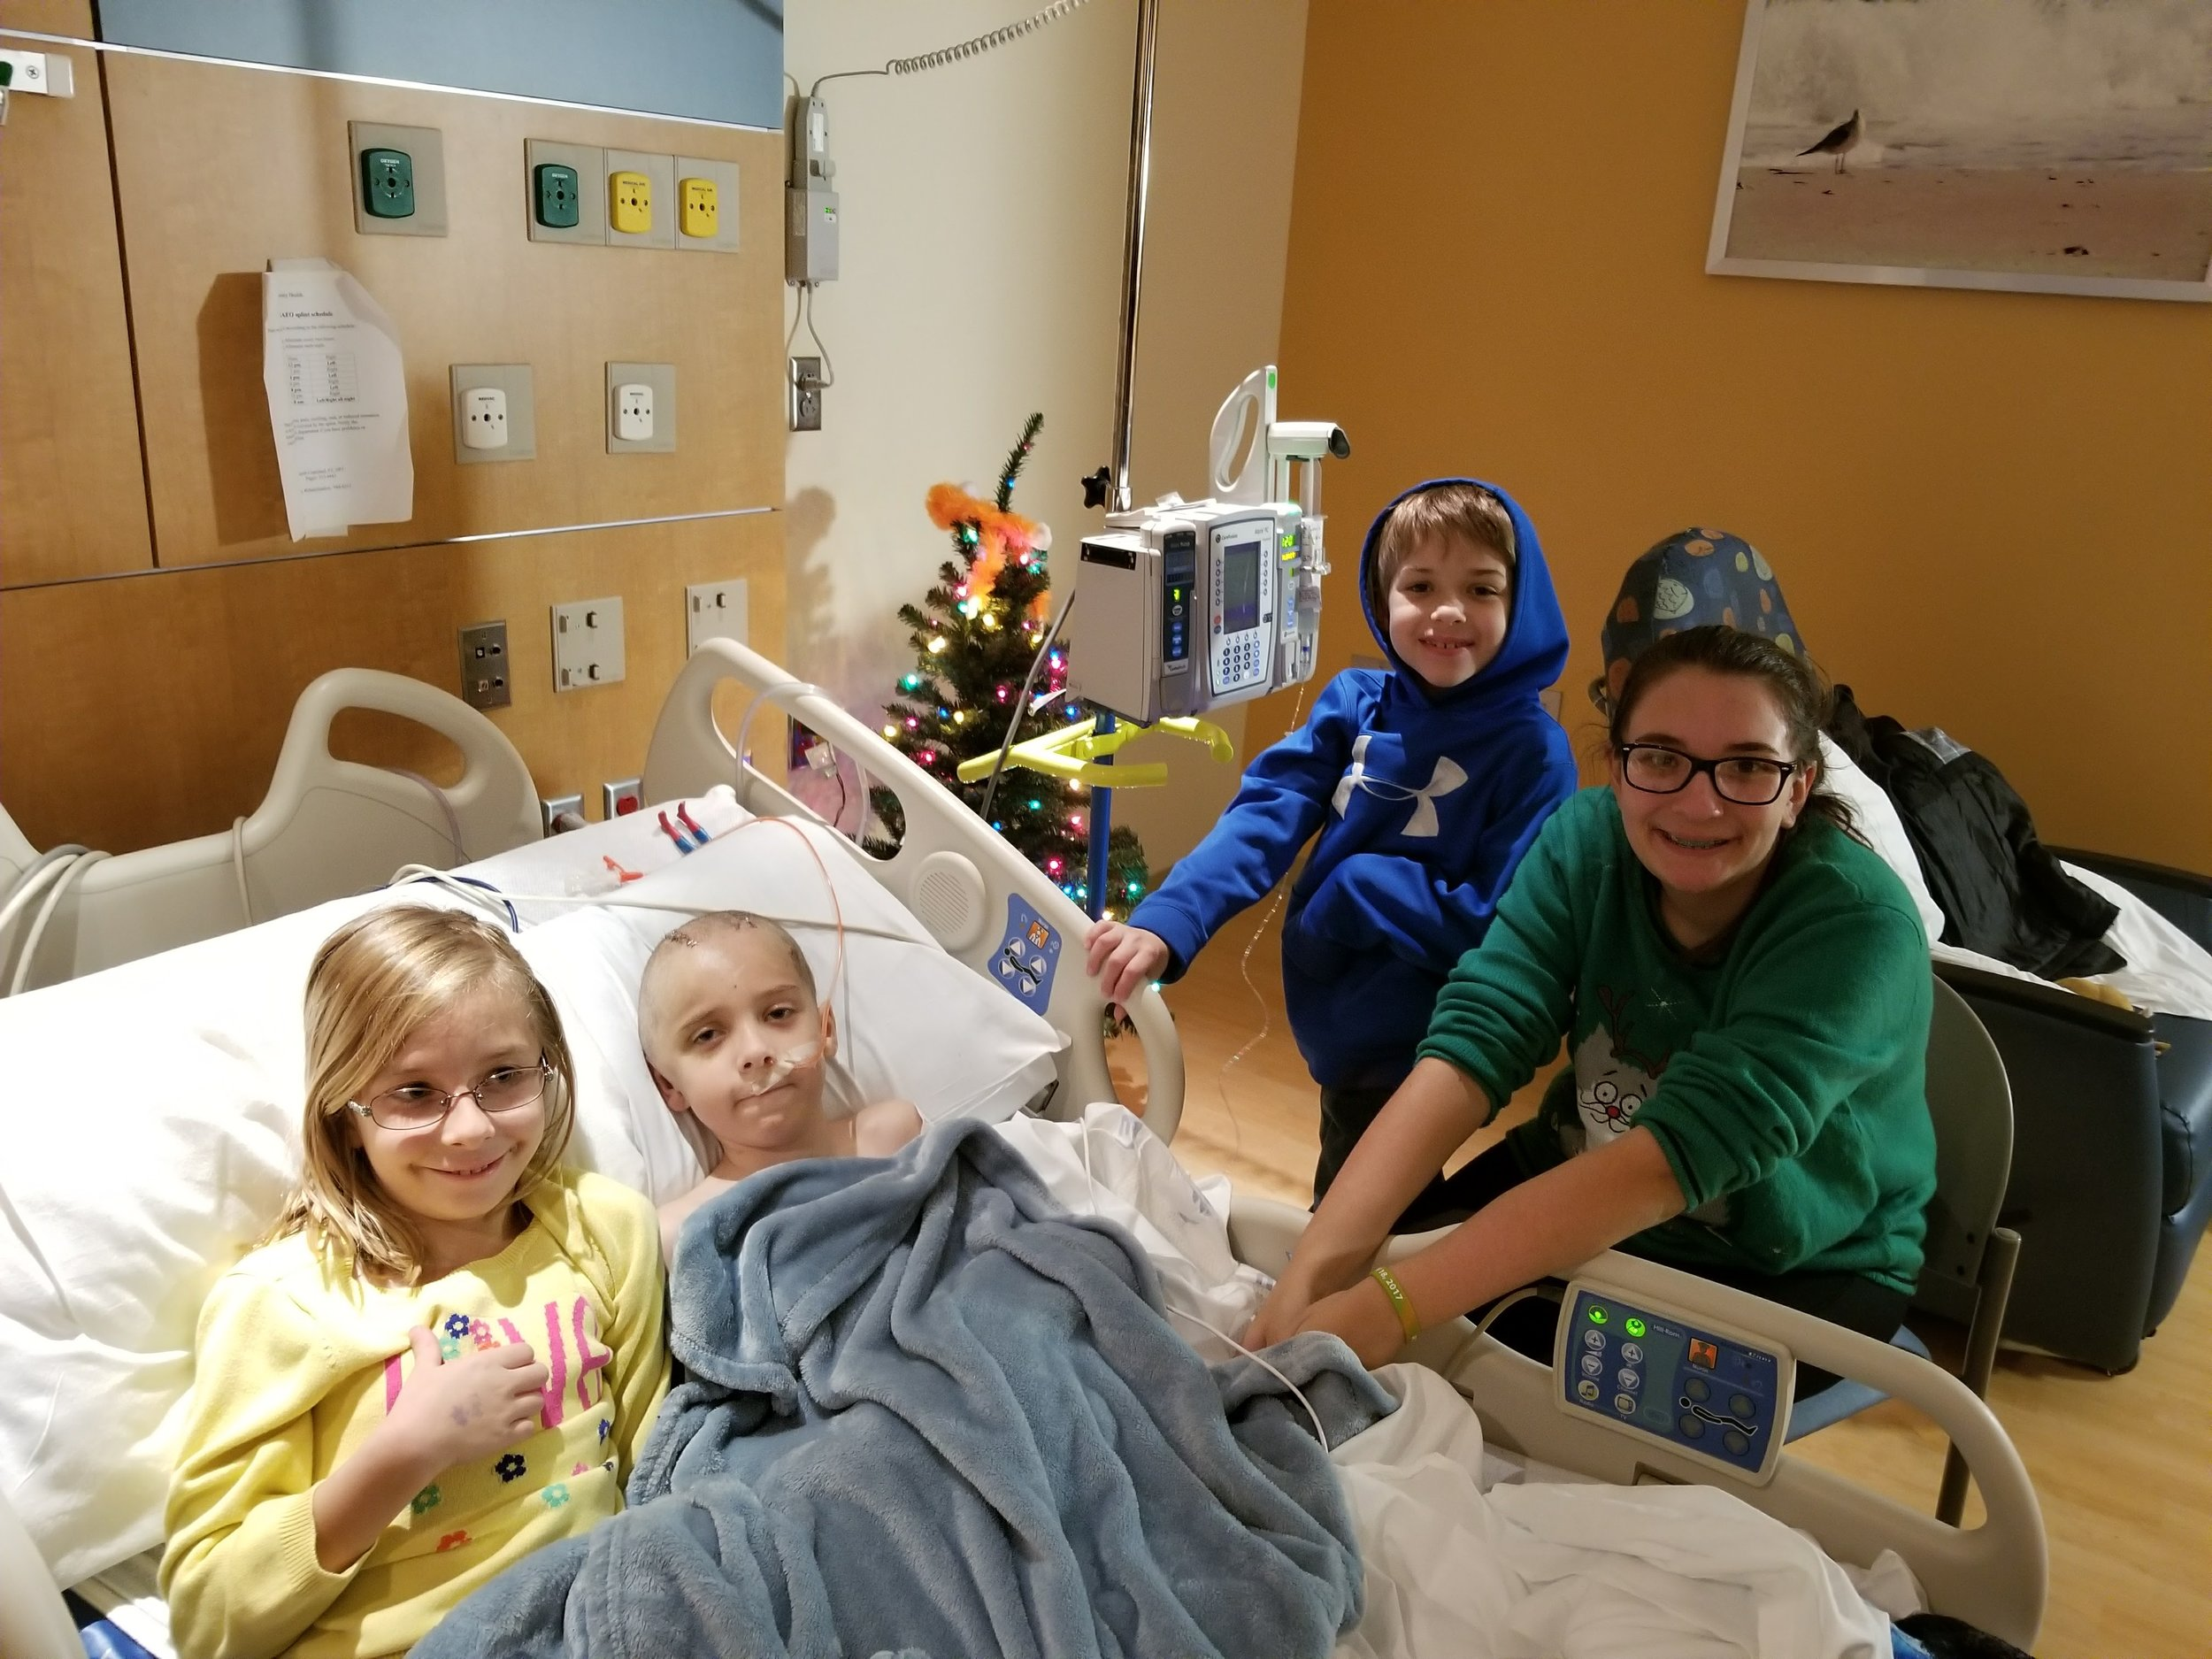 (left to right) Grace, 6, Christian, 6, Eli, 8, Madyson, 13, pose for a photo in Christian's hospital room at Riley Hospital for Children Nov. 30, 2017, just over a month after Christian was first admitted to the hospital. The siblings were not able to visit Christian often due to flu restrictions and the severity of his care. Christian would cry and beg his siblings not to leave at the end of the day.  | PHOTO COURTESY OF DAUGHERTY FAMILY